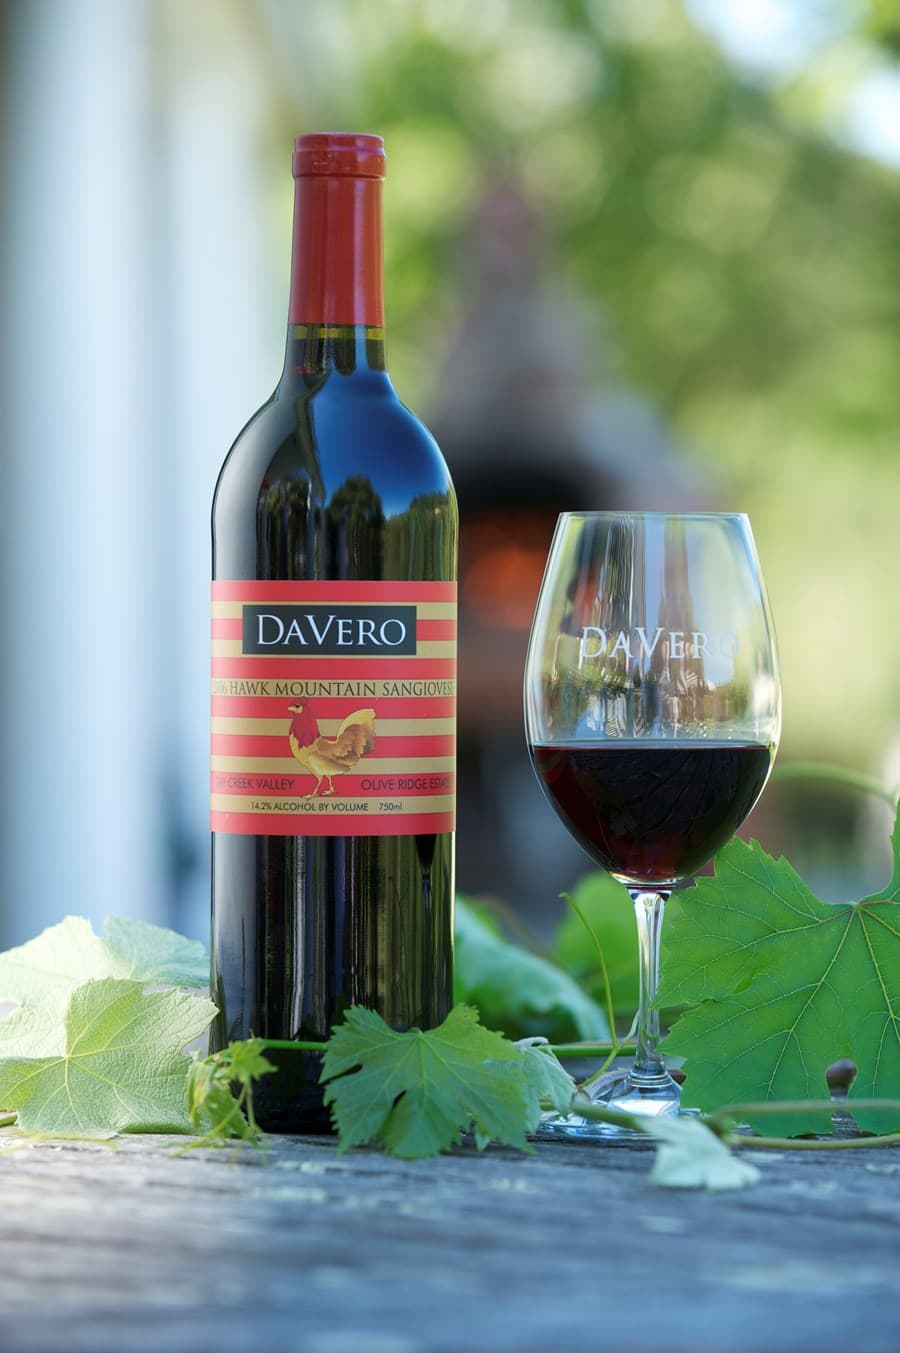 A gallery image (9001) of DaVero Farms & Winery from CellarPass